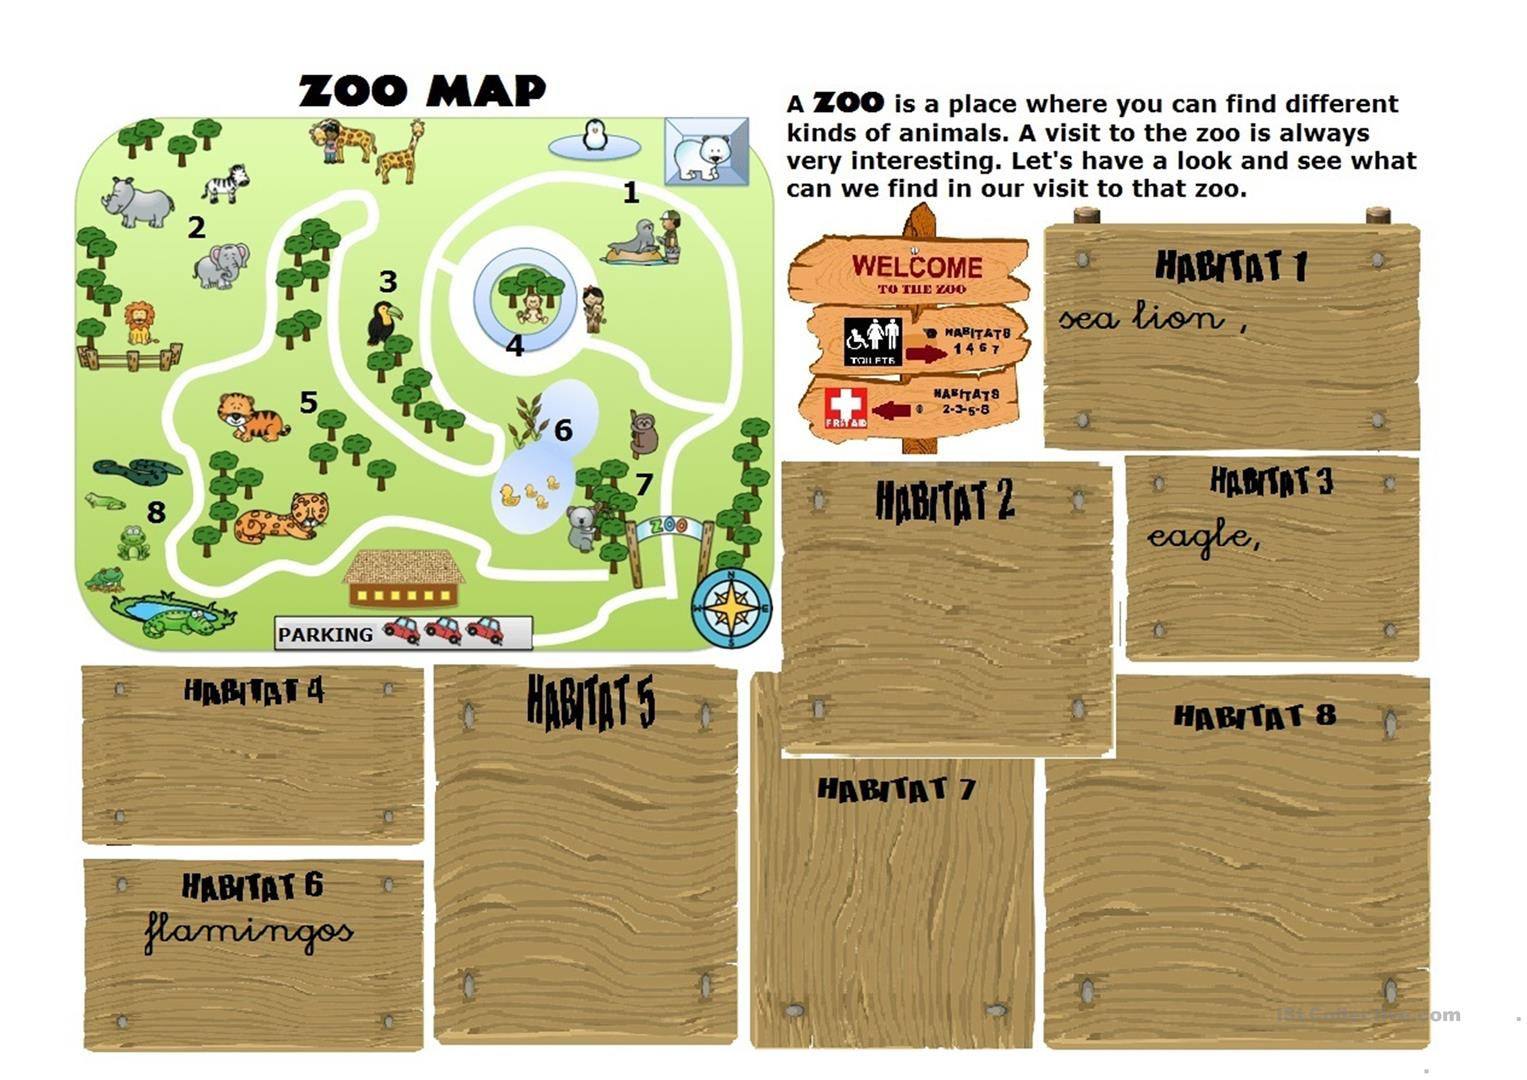 The Zoo Map